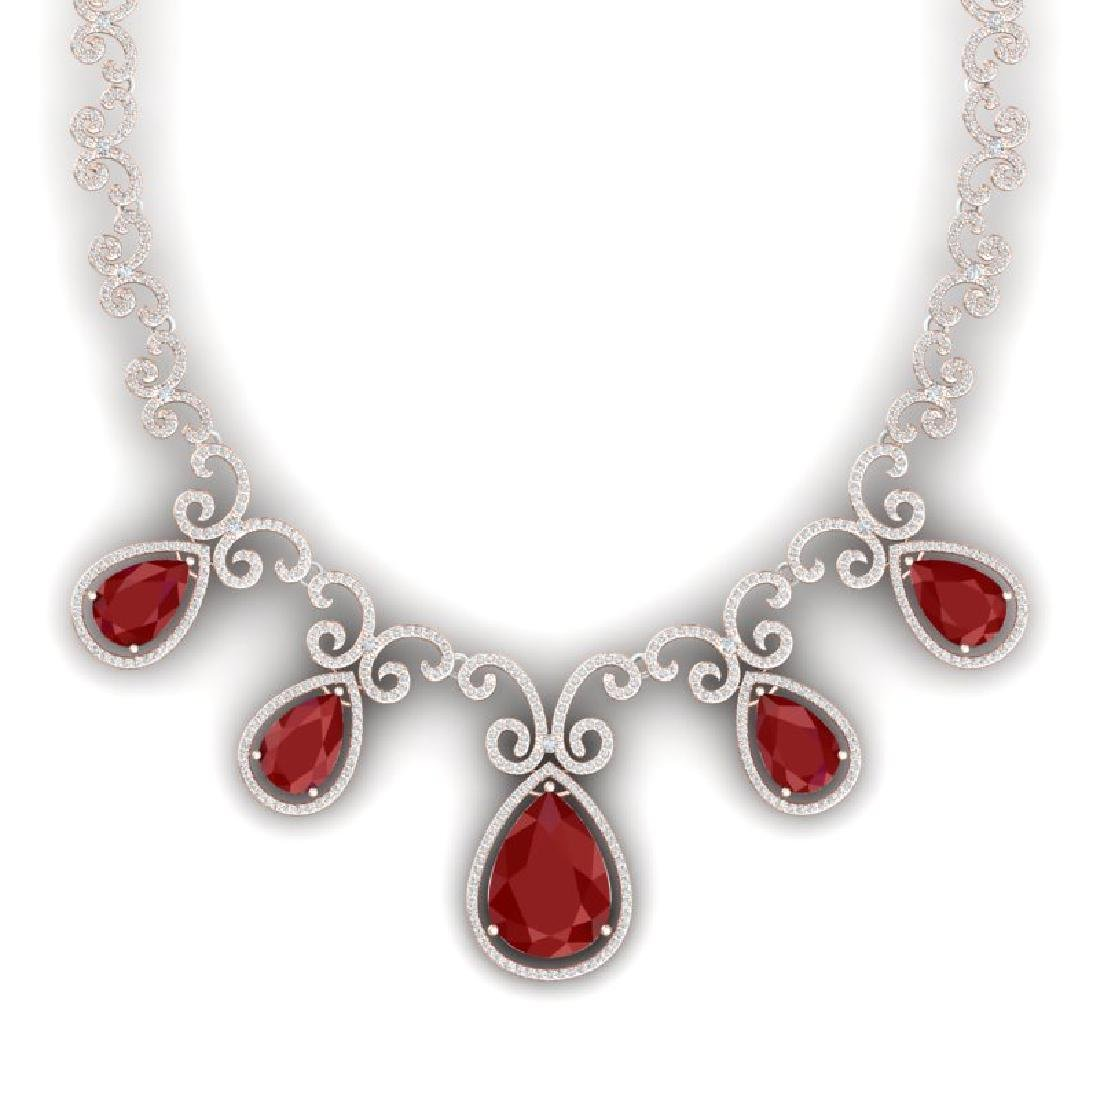 38.42 CTW Royalty Ruby & VS Diamond Necklace 18K Rose